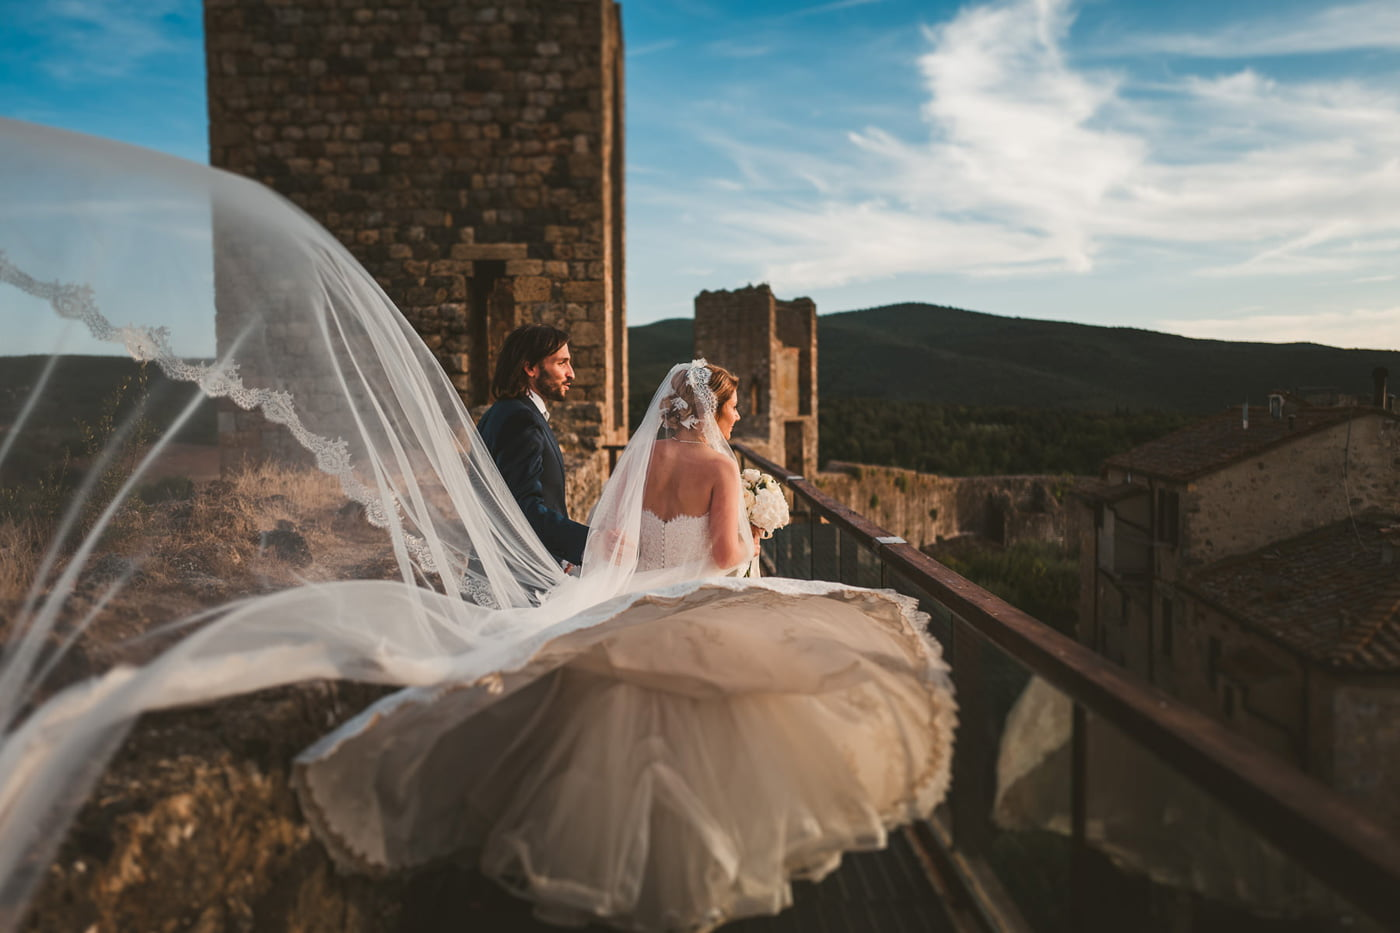 Andrea & Francesca | Wedding at Borgo San Luigi by Federico Pannacci 60